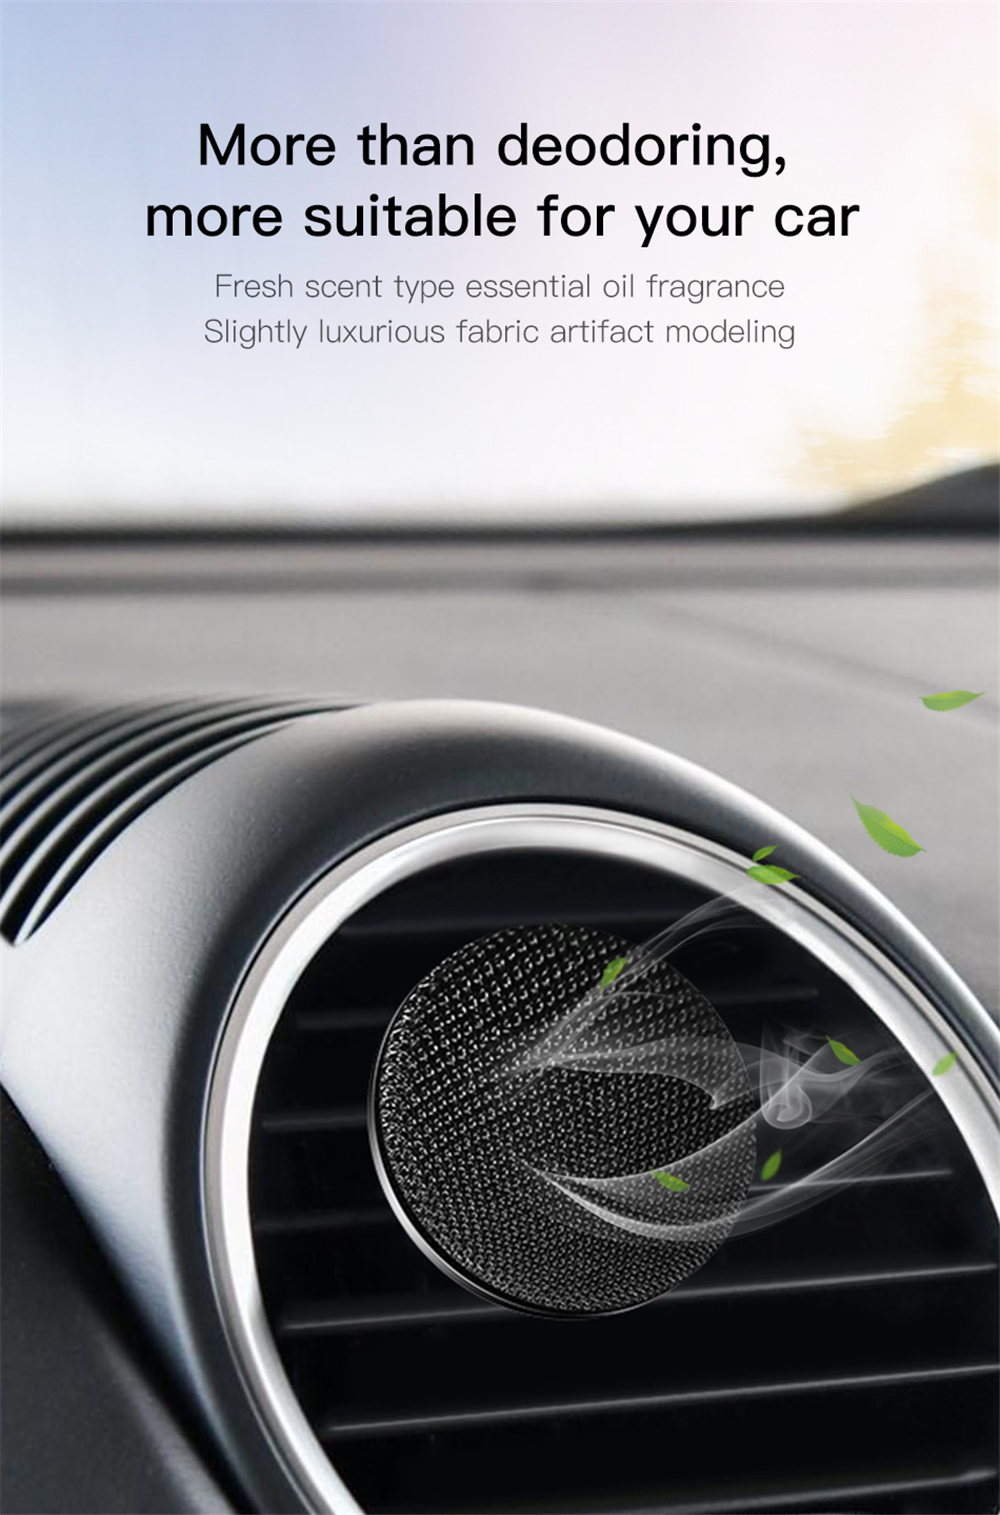 Baseus Car Air Freshener Perfume Auto Conditioning Outlet Vent Liquid Aromatherapy Diffuser